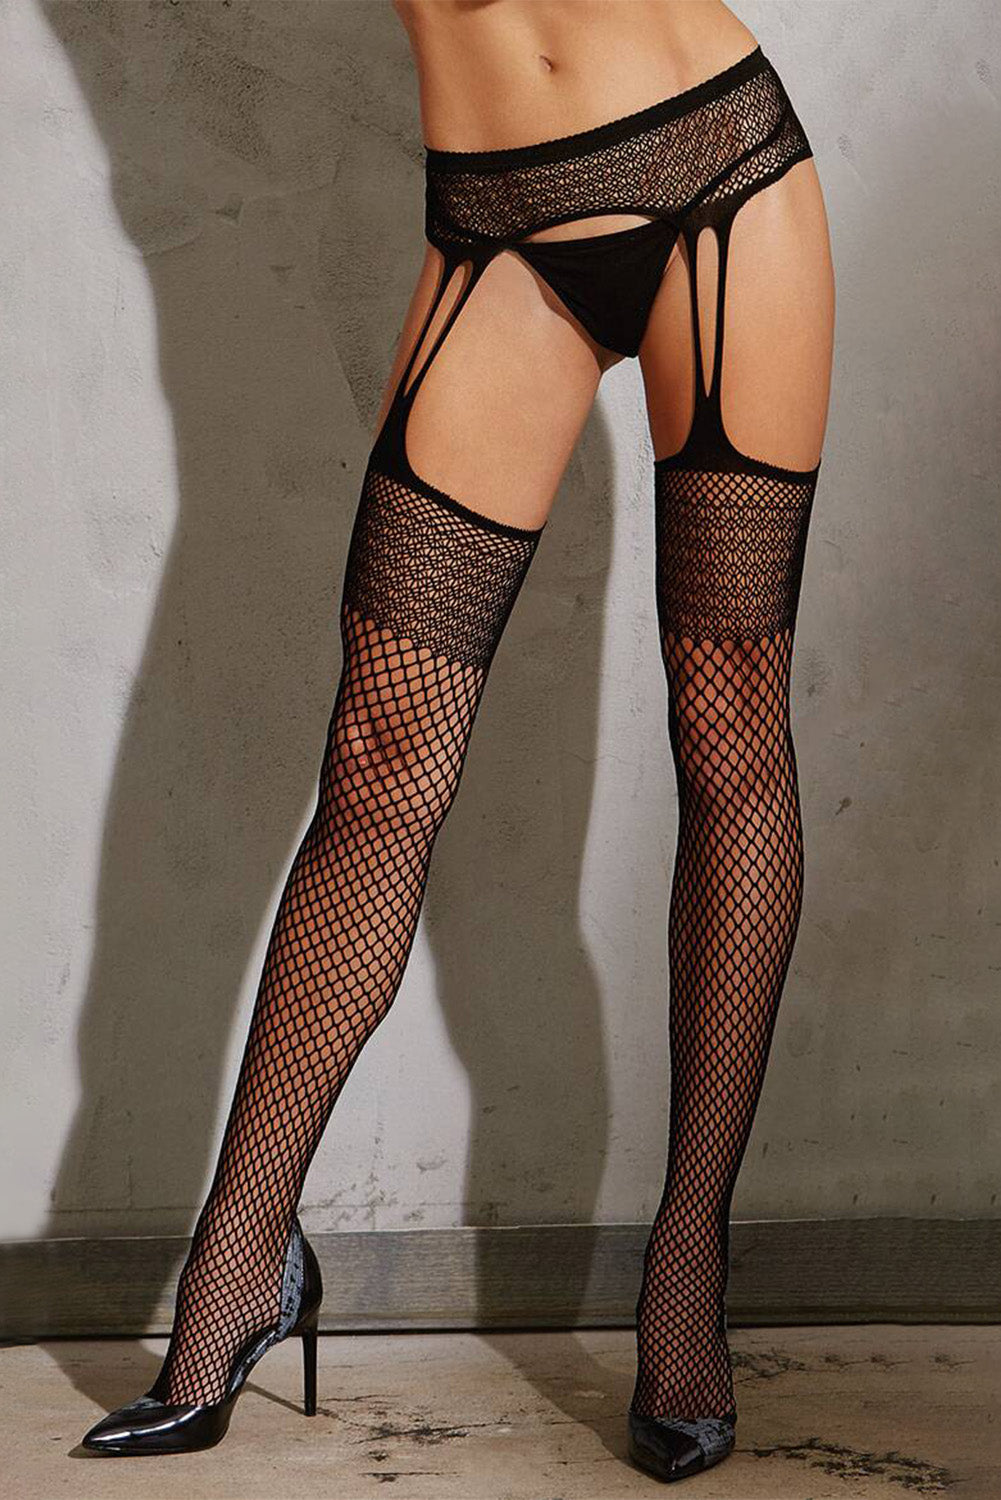 Black High Waist Fishnet Lace Pantyhose Pantyhose Discount Designer Fashion Clothes Shoes Bags Women Men Kids Children Black Owned Business